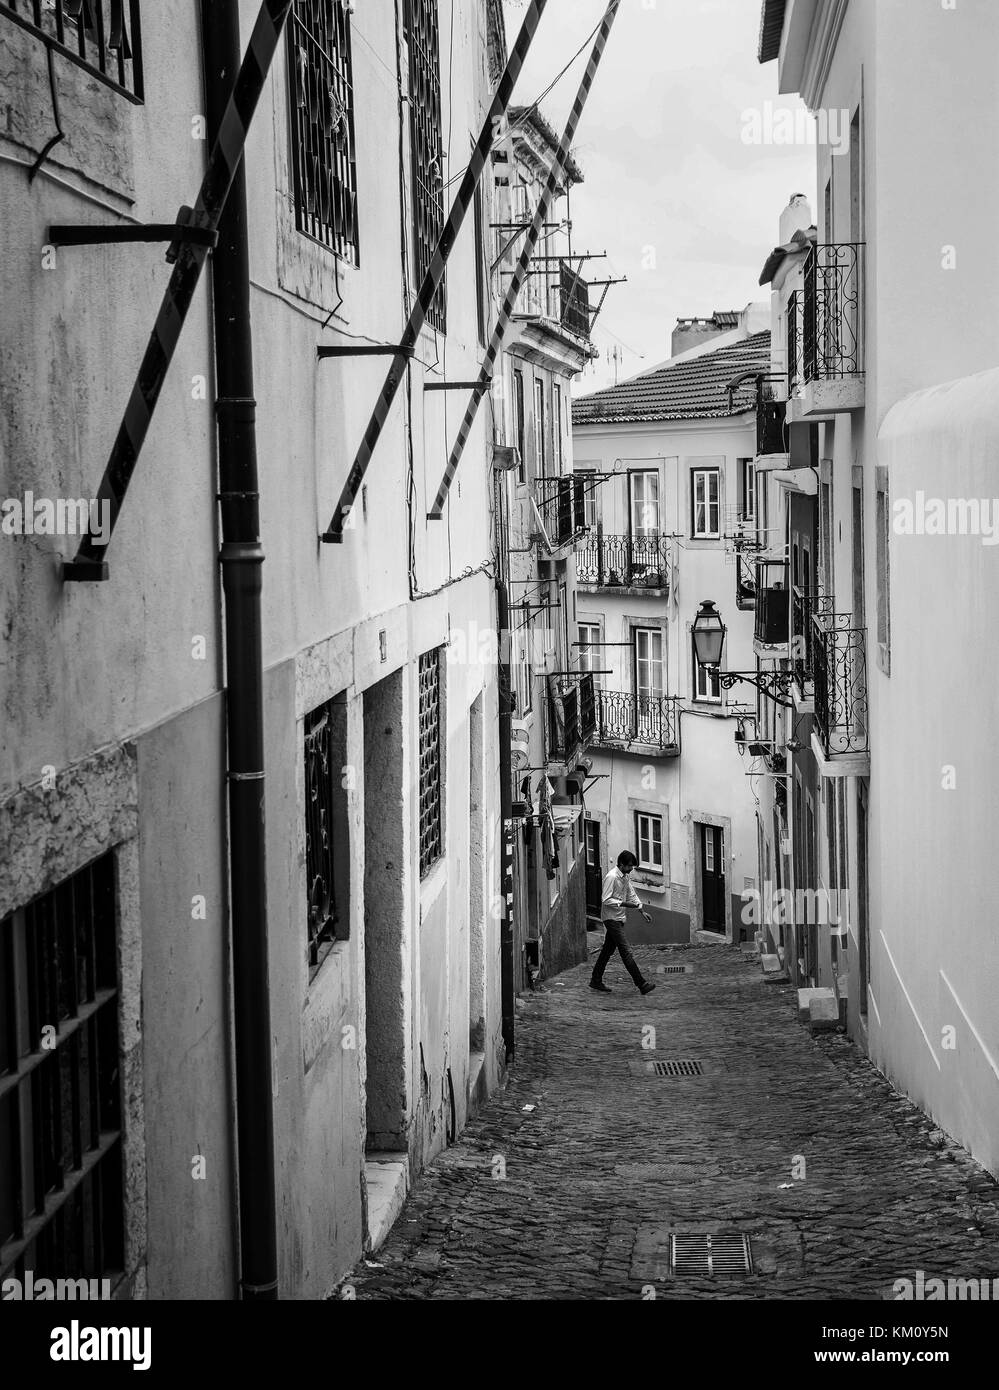 Colorful street in Alfama quarter, old picturesque part of Lisbon, Capital of Portugal - Stock Image